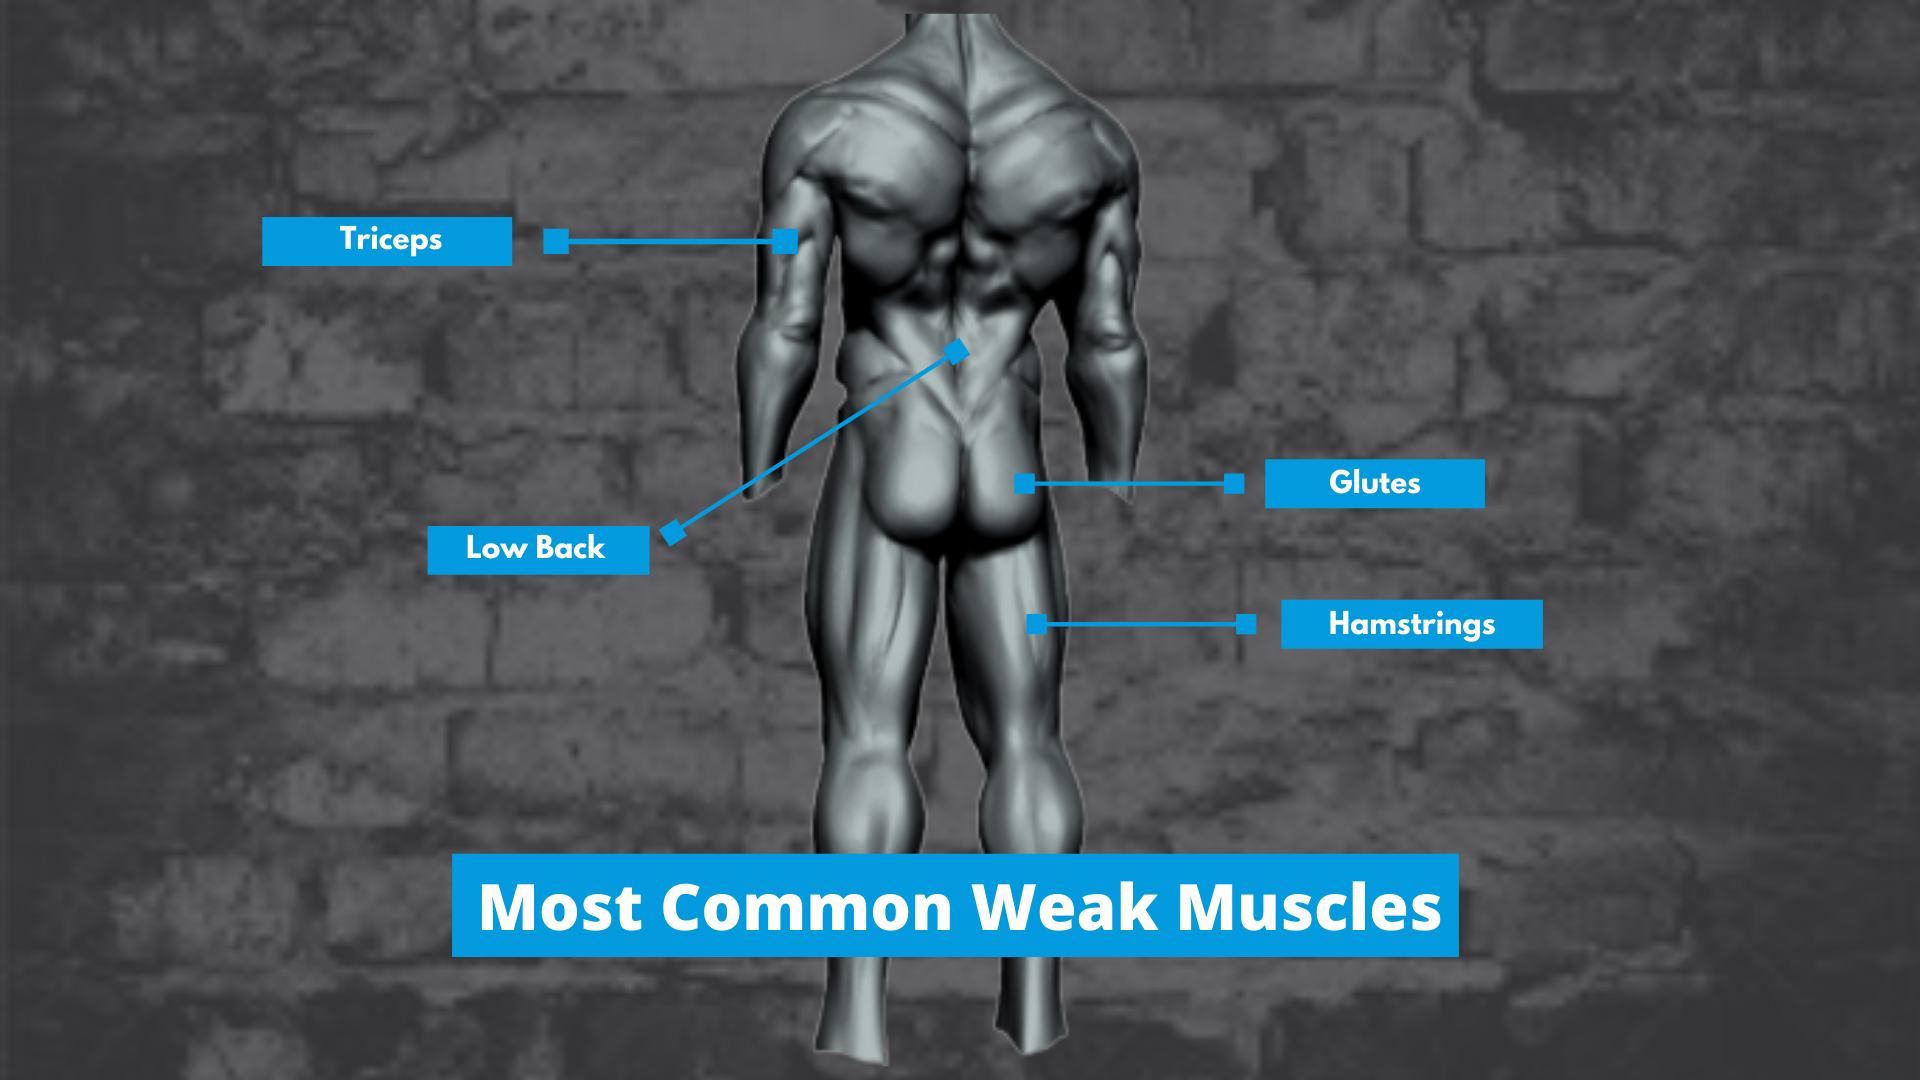 Most Common Weak Muscles Graphic